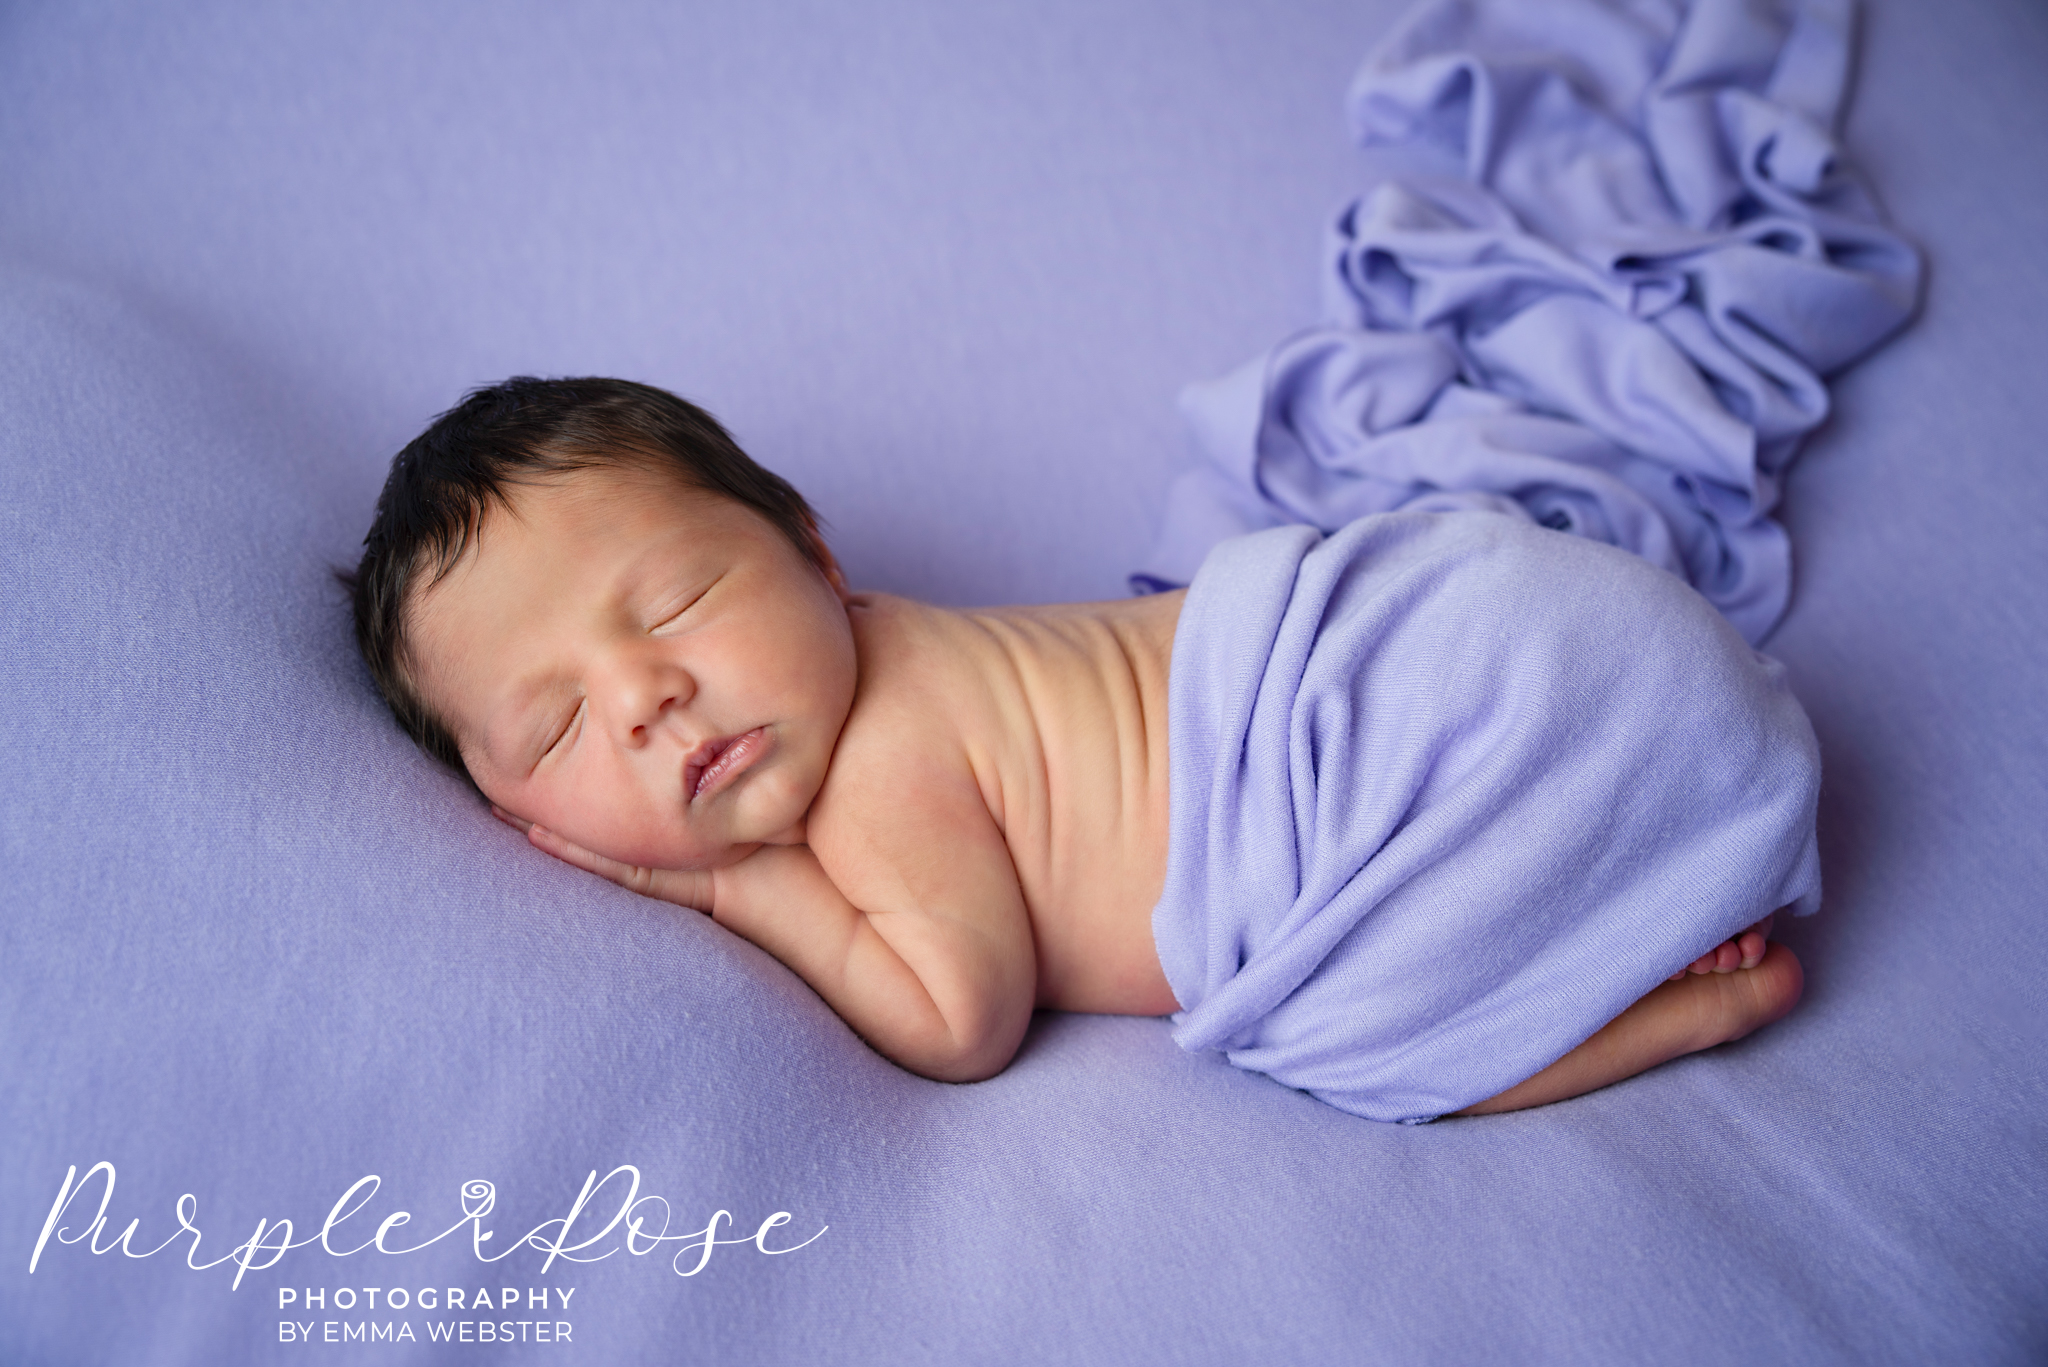 New born baby sleeping on a purple blanket